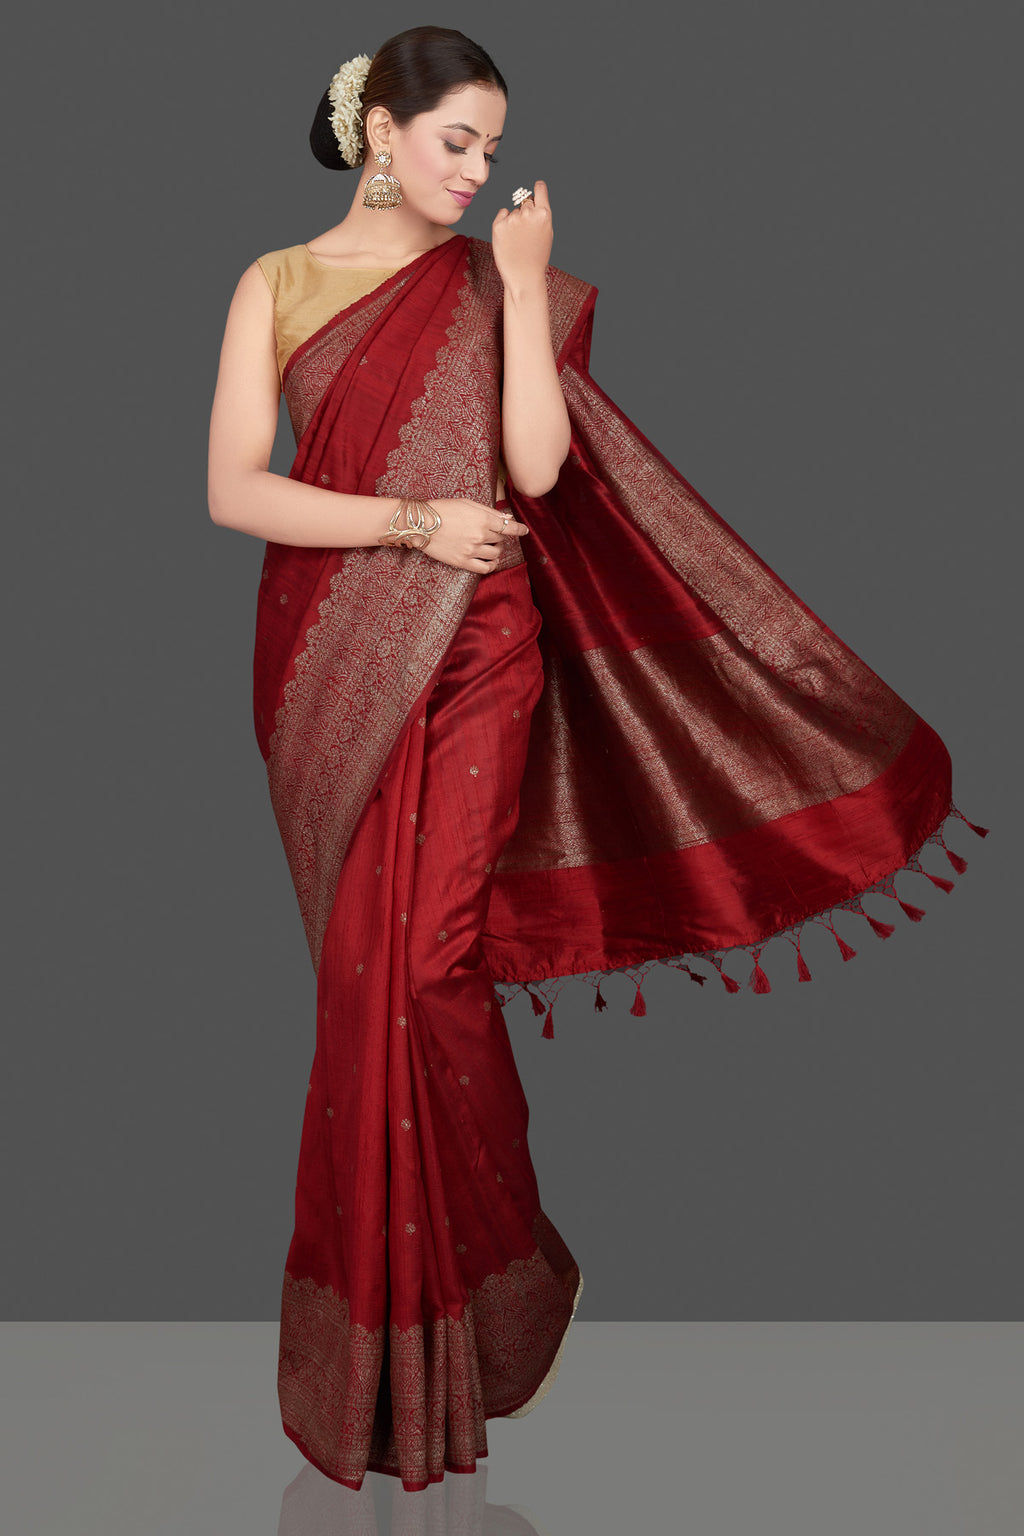 Shop beautiful maroon tussar Banarasi saree online in USA with antique zari border. Go for stunning Indian designer sarees, georgette sarees, handwoven saris, embroidered sarees for festive occasions and weddings from Pure Elegance Indian clothing store in USA.-full view